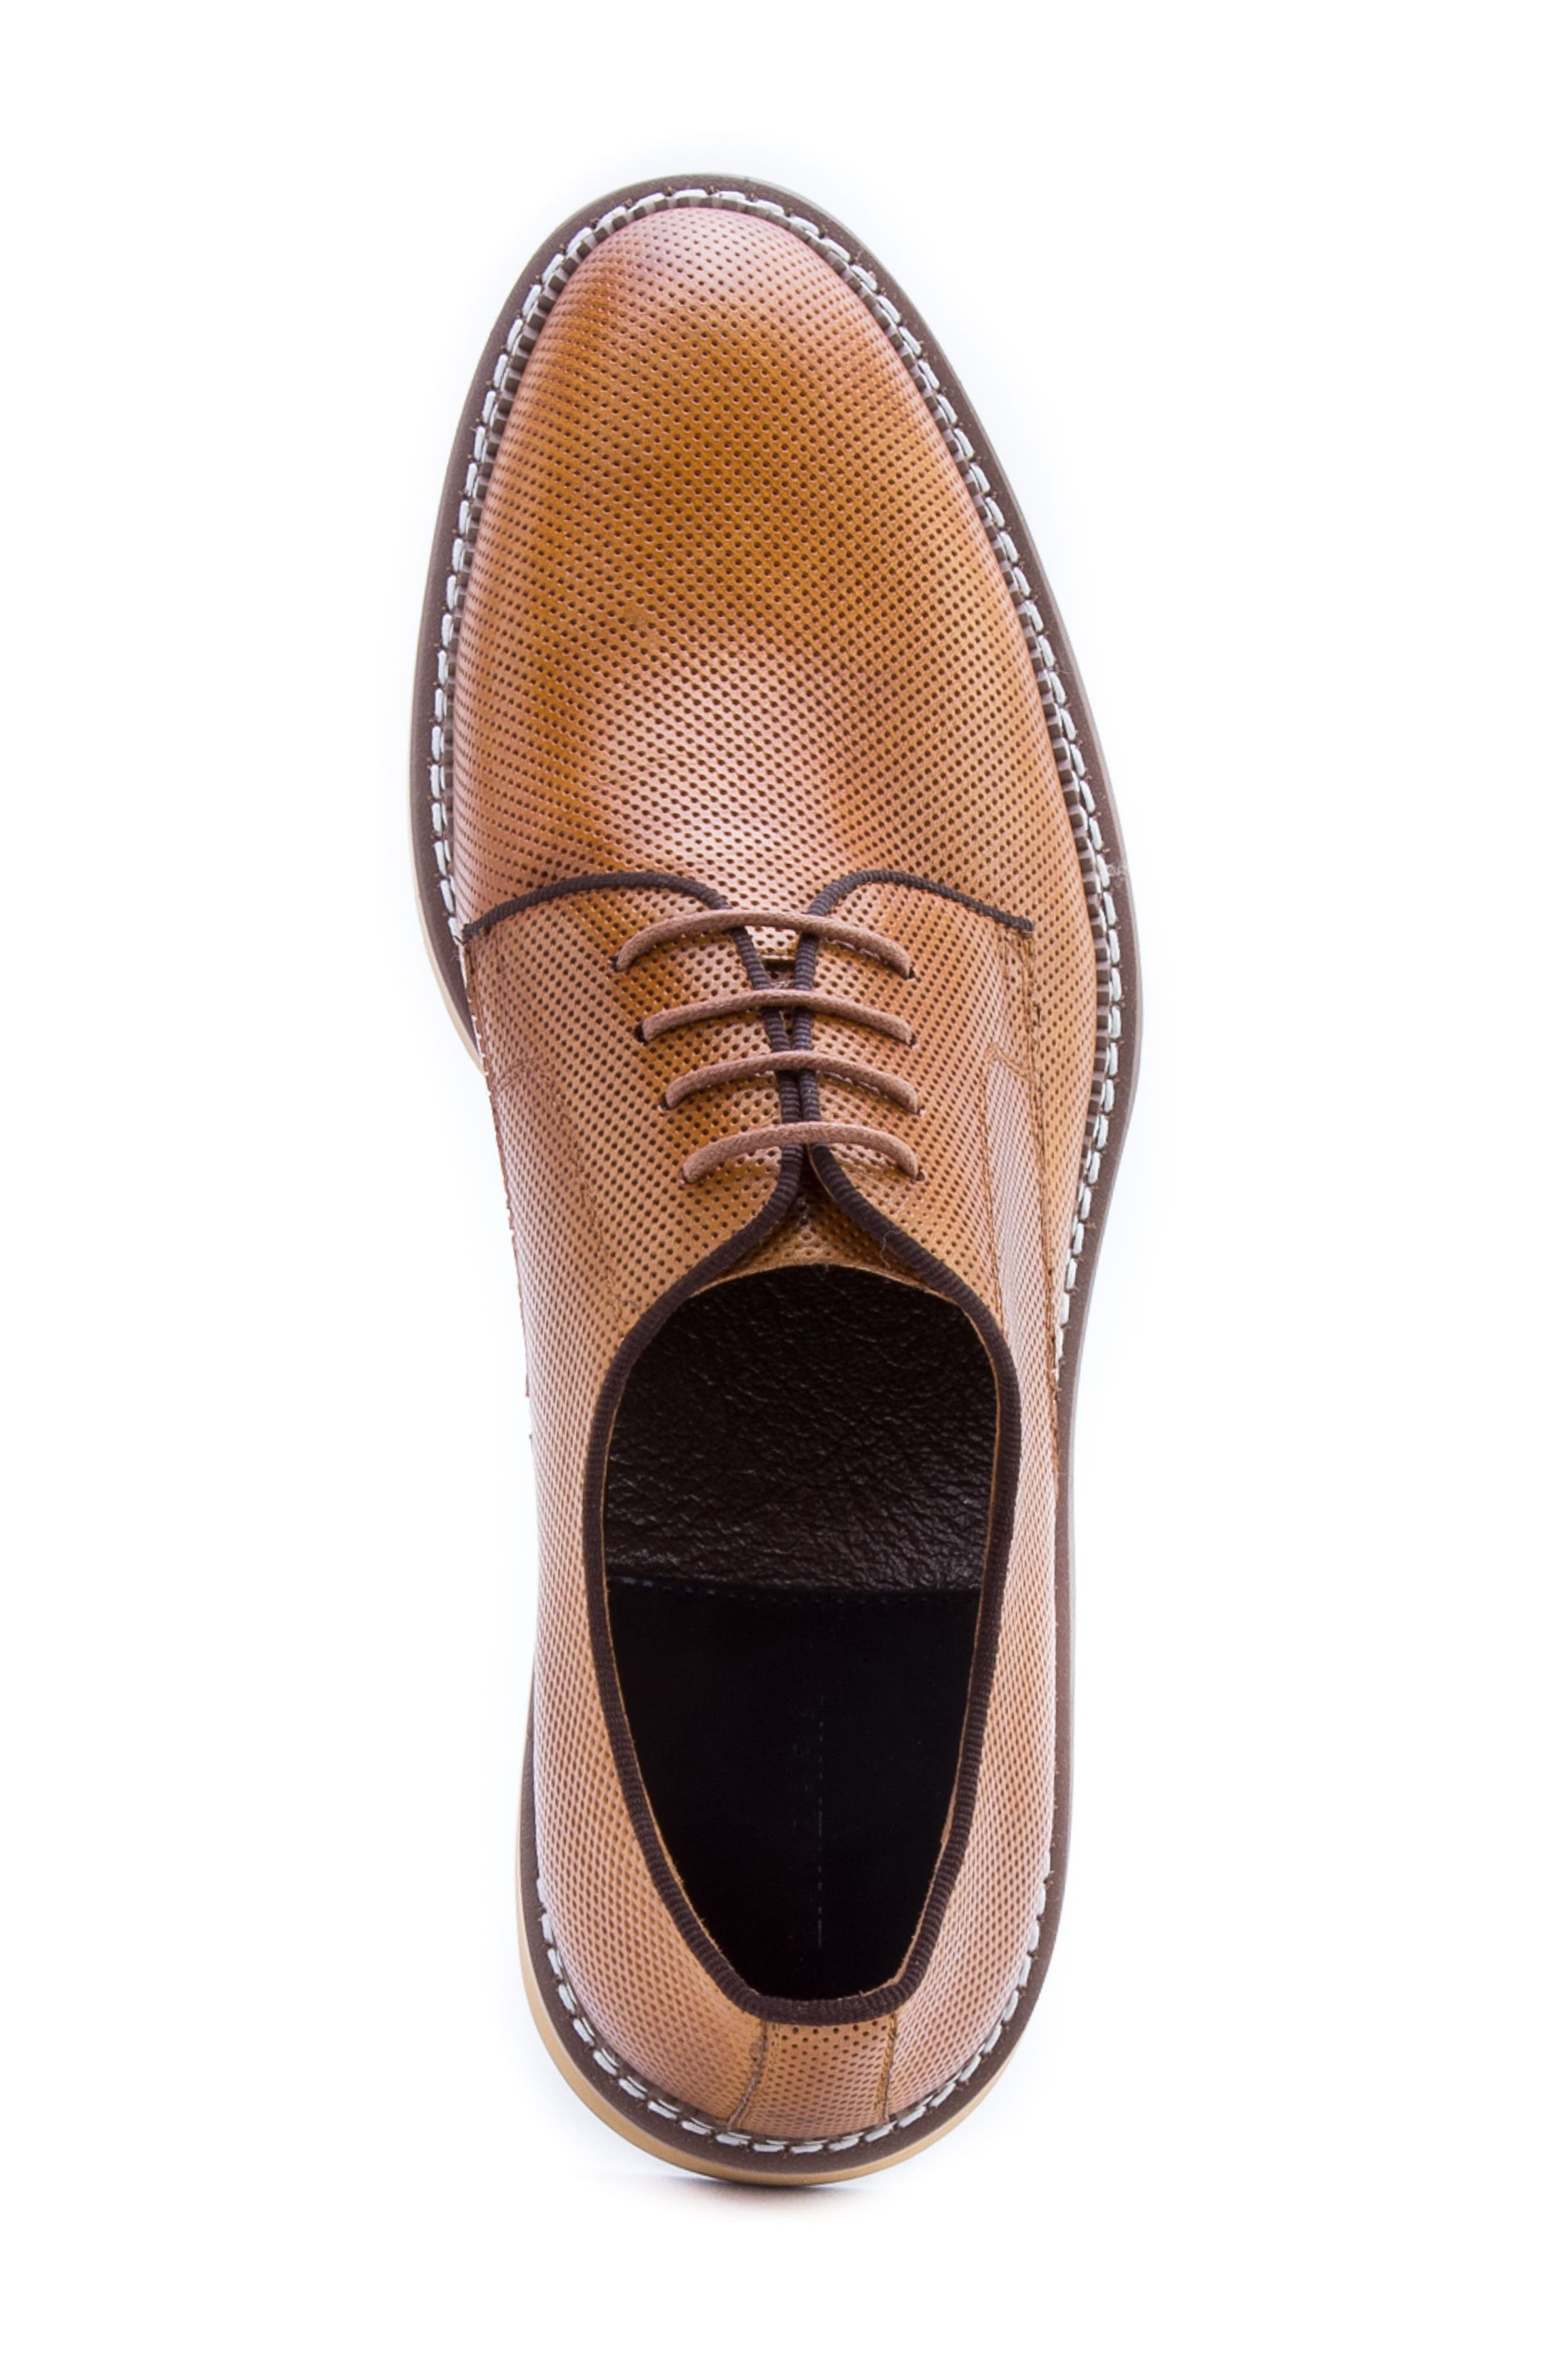 Monticello Perforated Plain Toe Derby,                             Alternate thumbnail 5, color,                             Cognac Leather